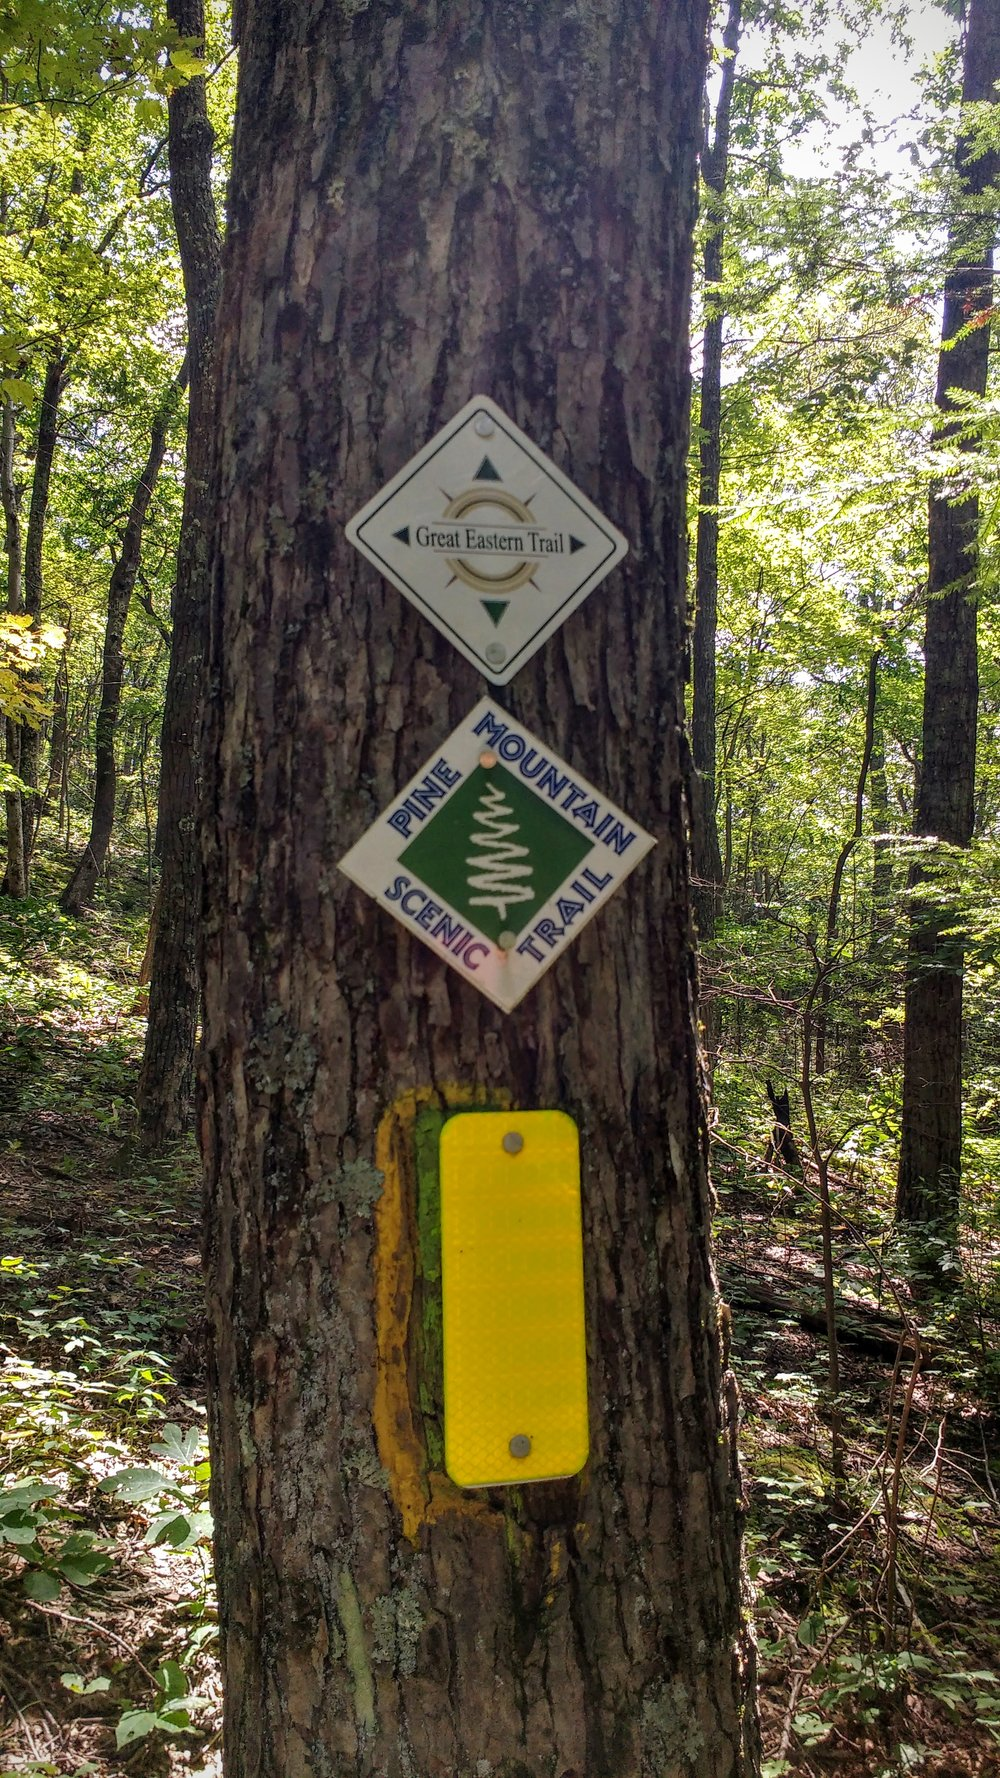 Three blazes mark the Pine Mountain Trail - old yellow blazes, new PMT blazes, and GET blazes